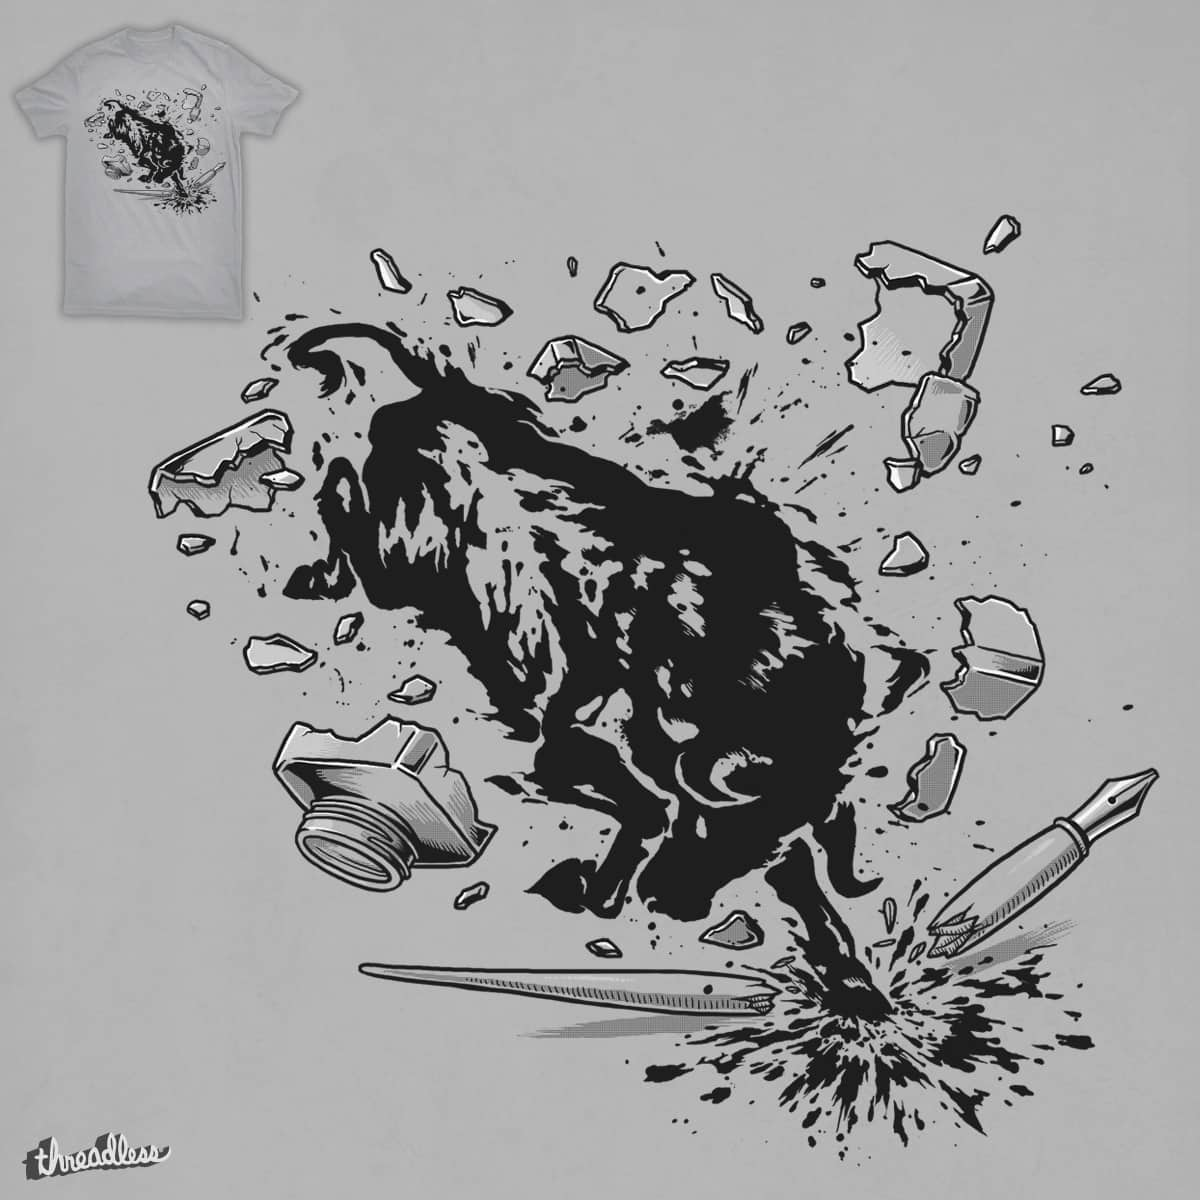 Bull Ink by ben chen on Threadless